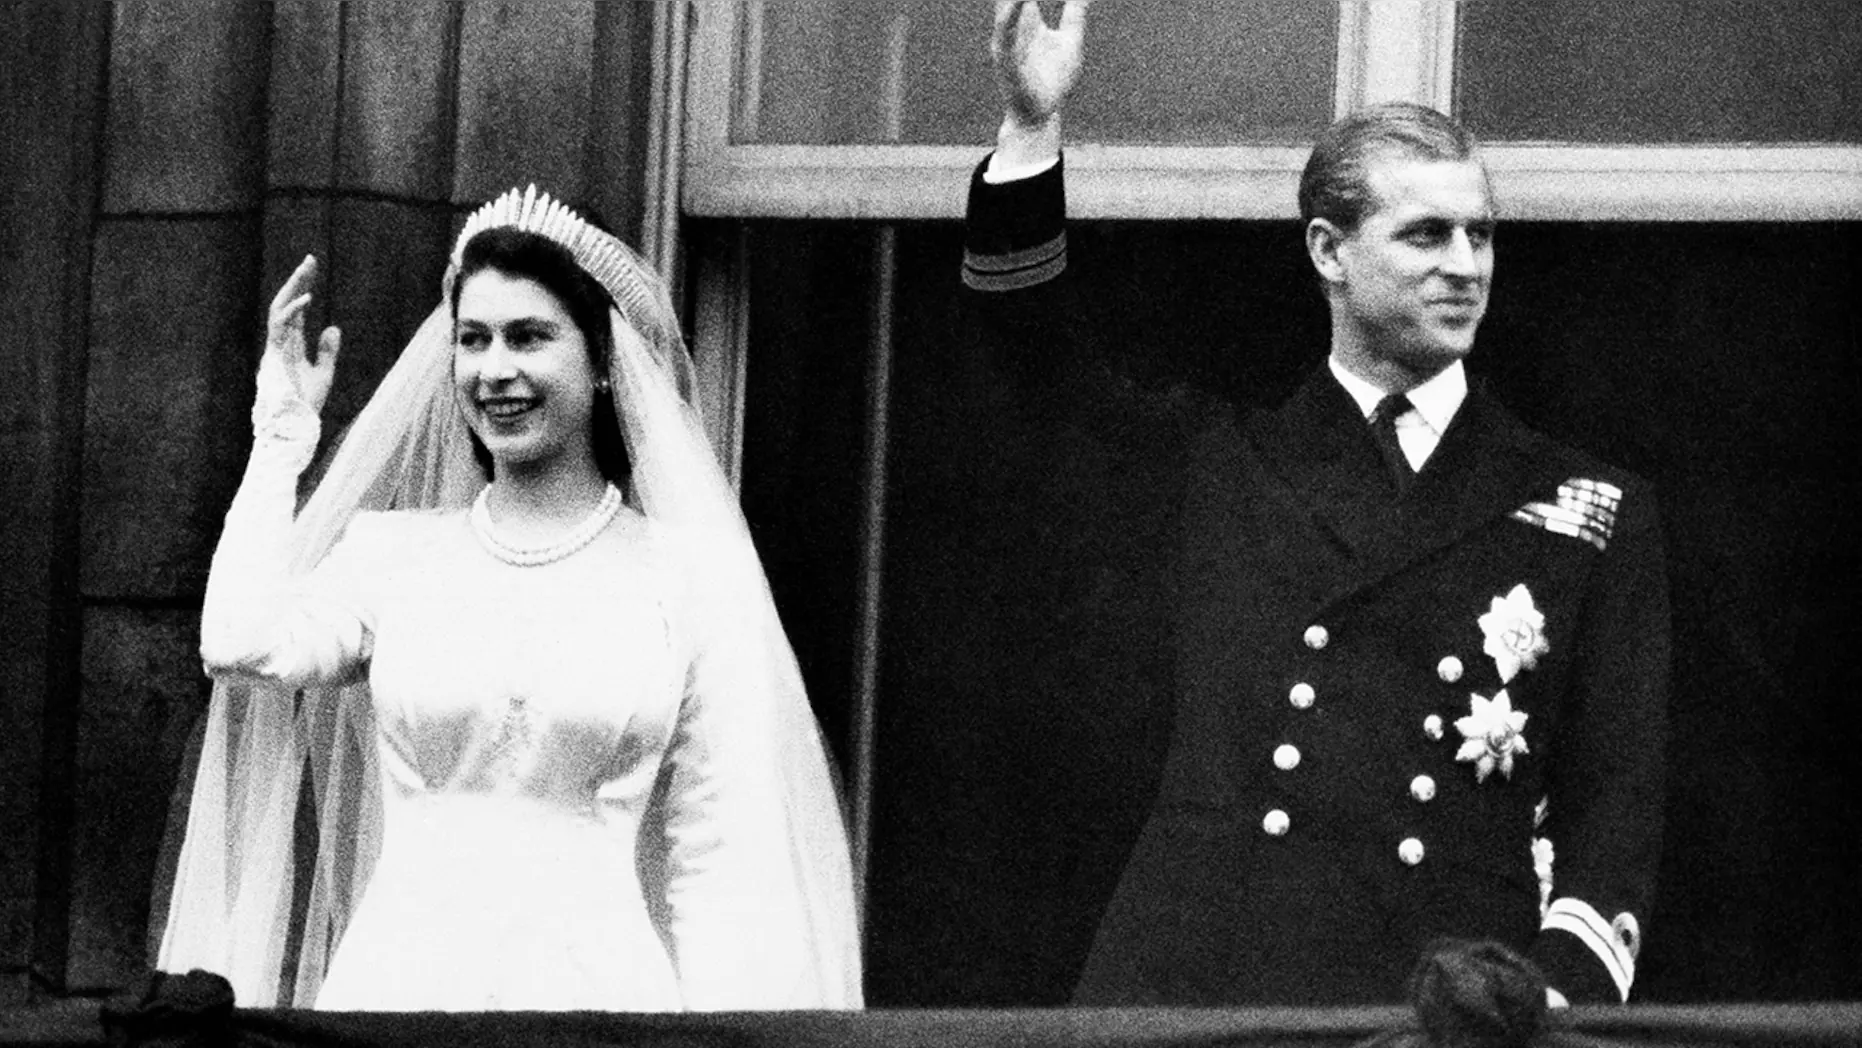 In this Nov. 20, 1947 file photo, Britain's Princess Elizabeth and her husband the Duke of Edinburgh wave to the crowds on their wedding day, from the balcony of Buckingham Palace in London. Buckingham Palace officials say Prince Philip, the husband of Queen Elizabeth II, has died, it was announced on Friday, April 9. (AP)